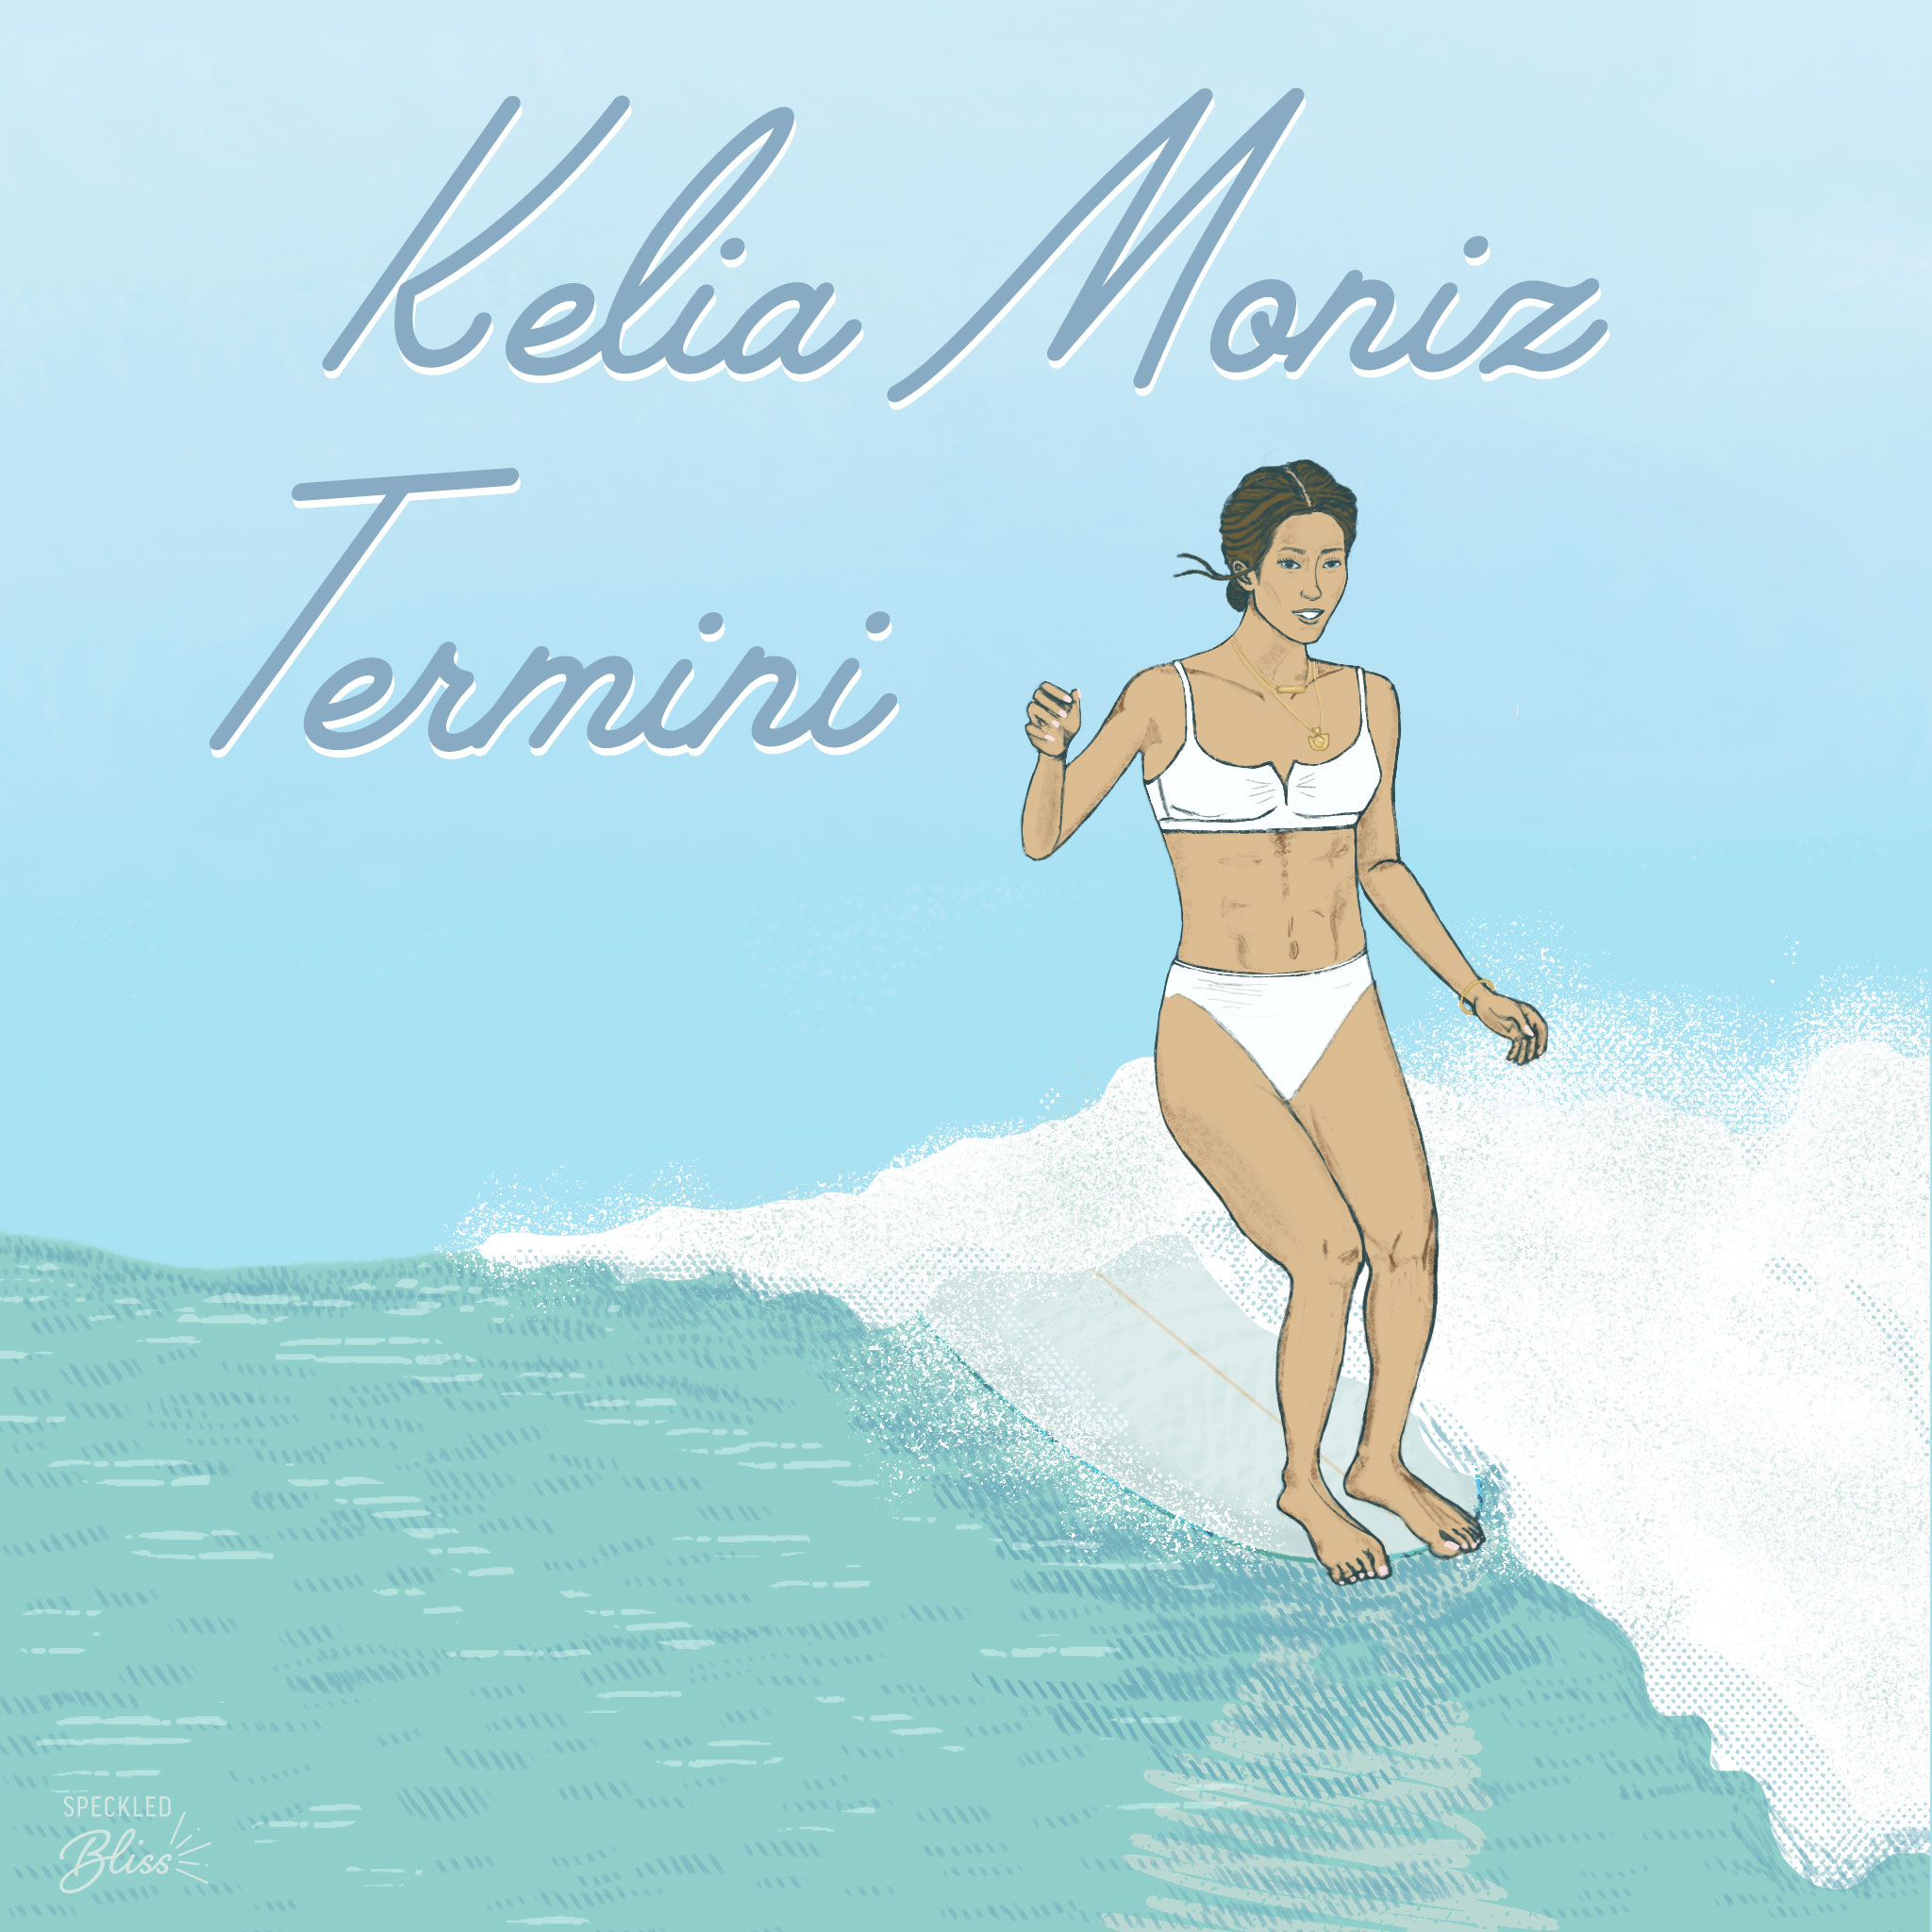 Meet Kelia Moniz Termini. Two-time WSL Longboard Champion and one of the beautiful faces of Roxy. You can call her Sister.   Born & raised into a surf family on the south shore of Oahu, she is the only sister out of 5 siblings.   Though she's been out of the competition scene for a few years, she's back at it again at the Noosa Longboard Open, which is going on now til Sunday (take into account the different timezones if you want to watch it live on  @wsl !). Her graceful surfing style is filled with finesse.  Her carefree, down to earth vibes, and closeness she has with her family are what I admire most. Not to mention her IG stories crack me up & are fun to watch! You can follow along the ride at  @keliamoniz !